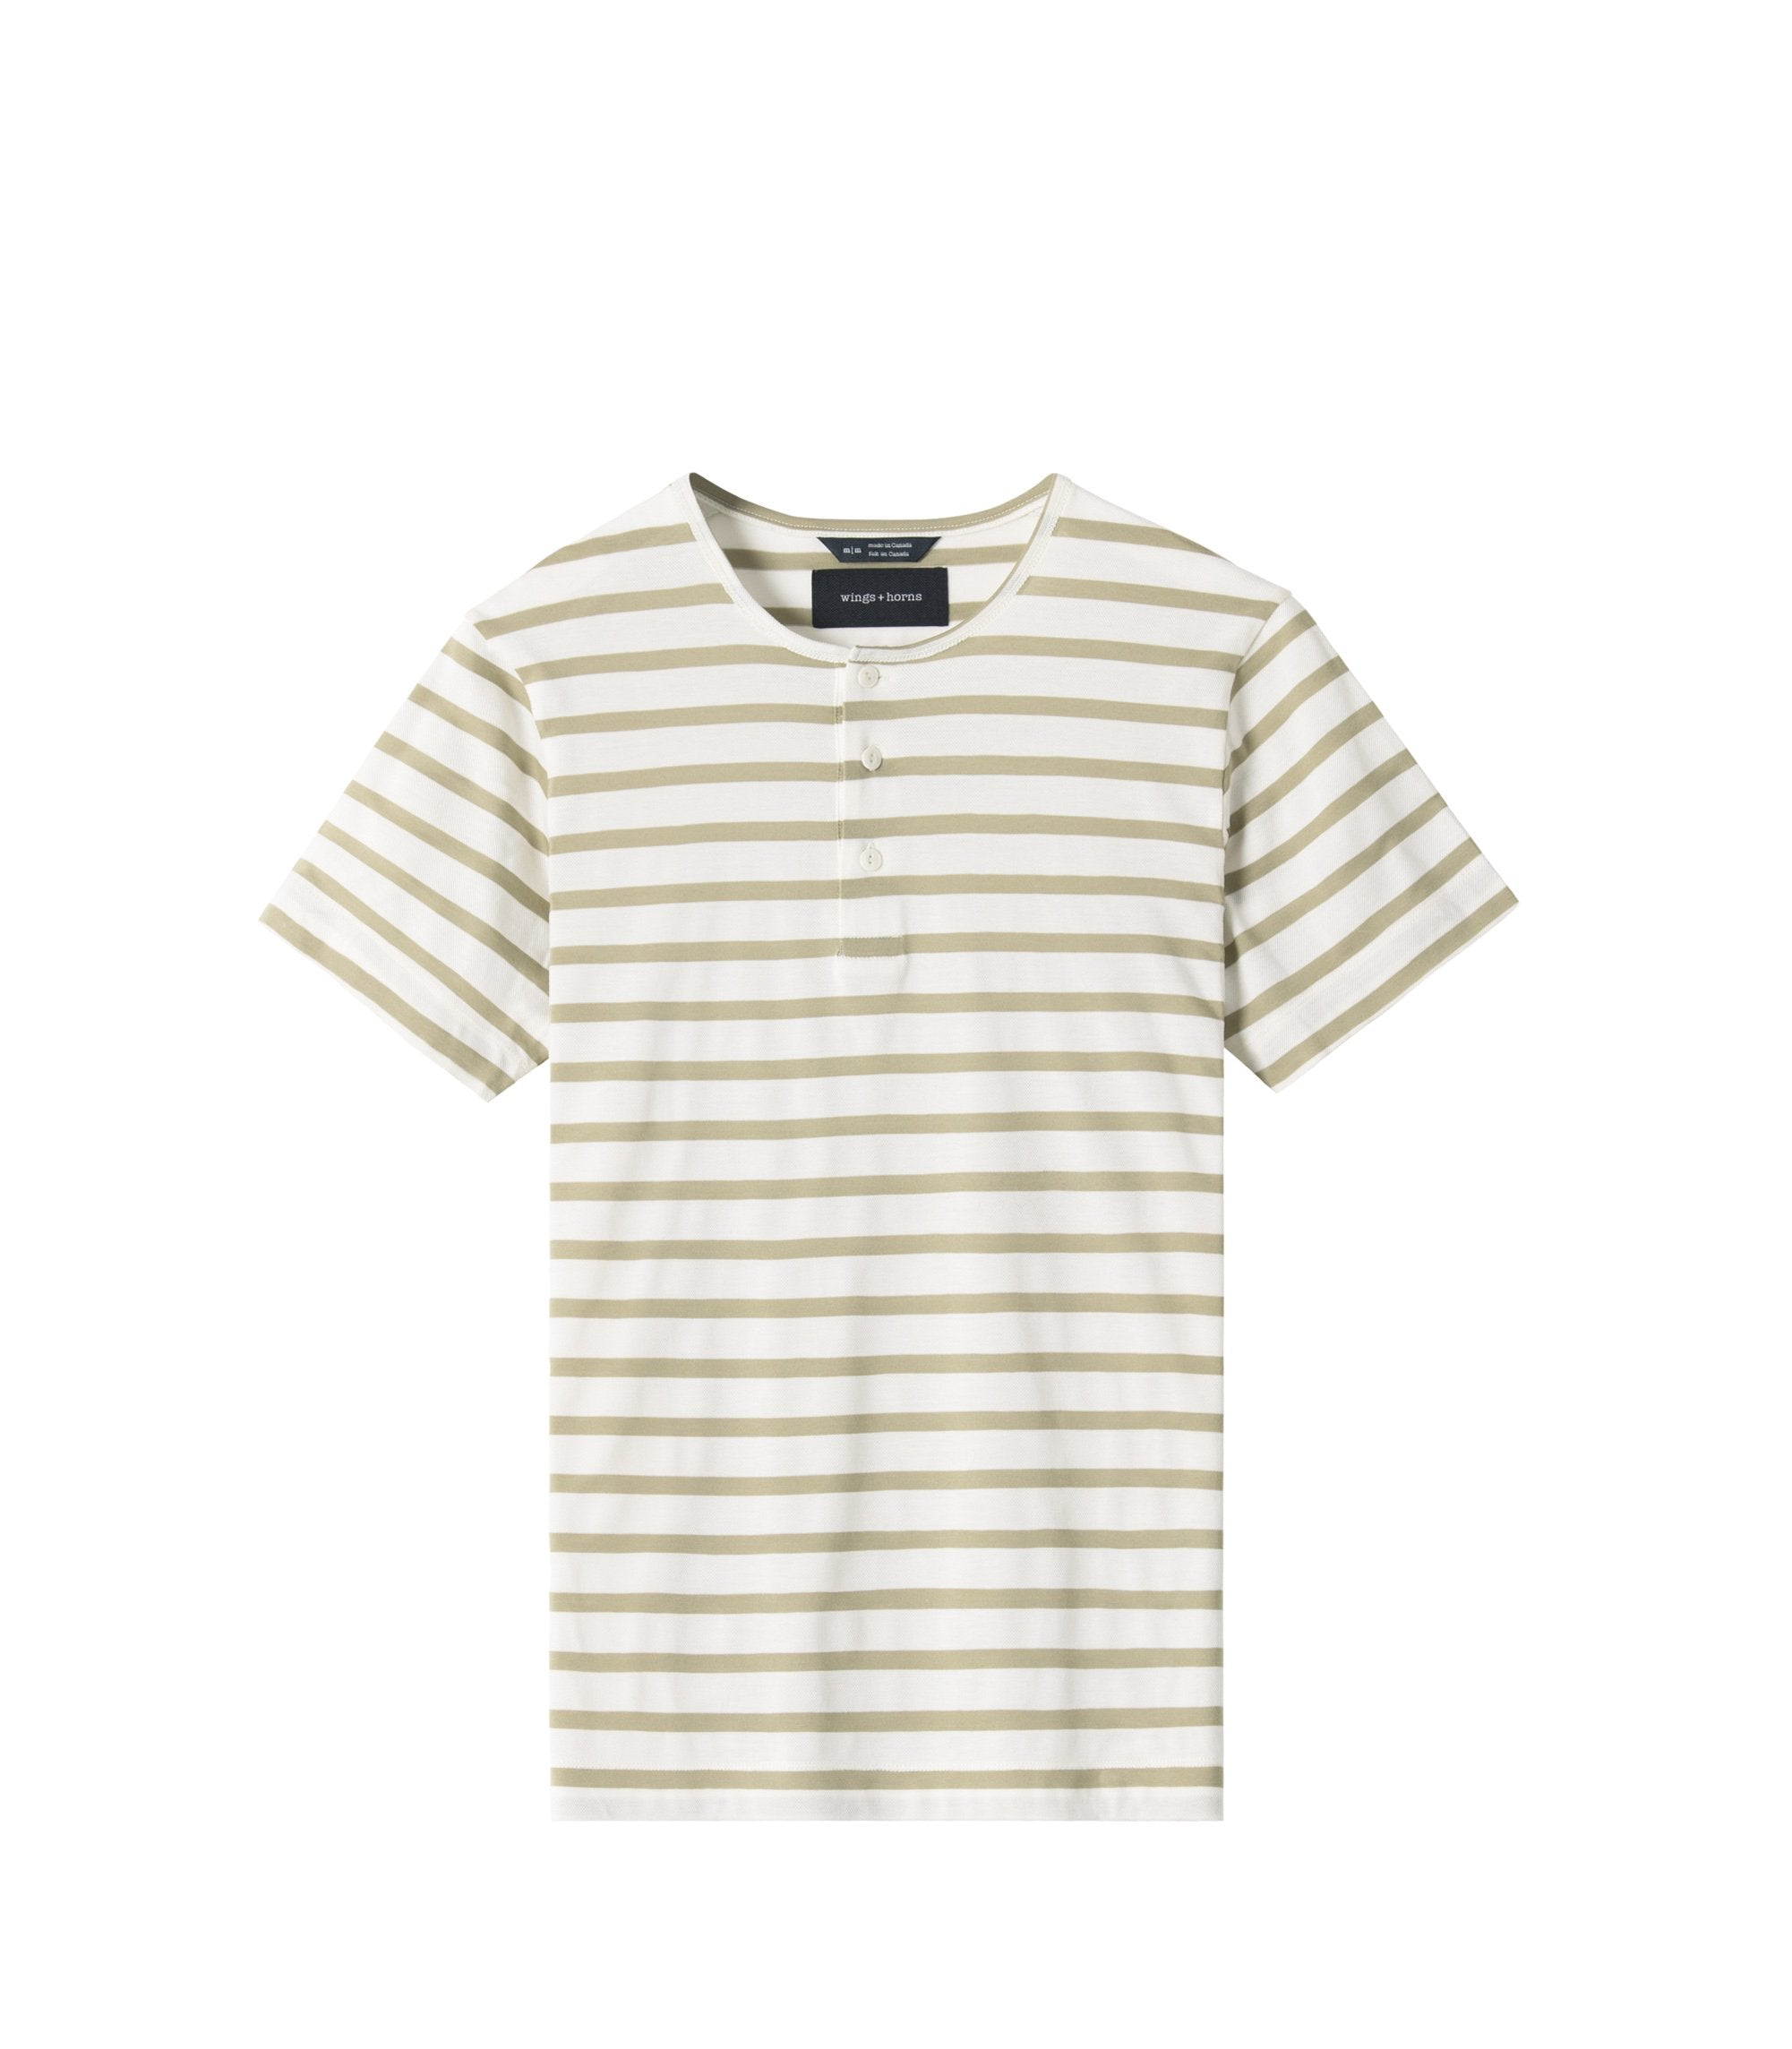 WINGS + HORNS M'S T-SHIRTS DUAL KNIT HENLEY